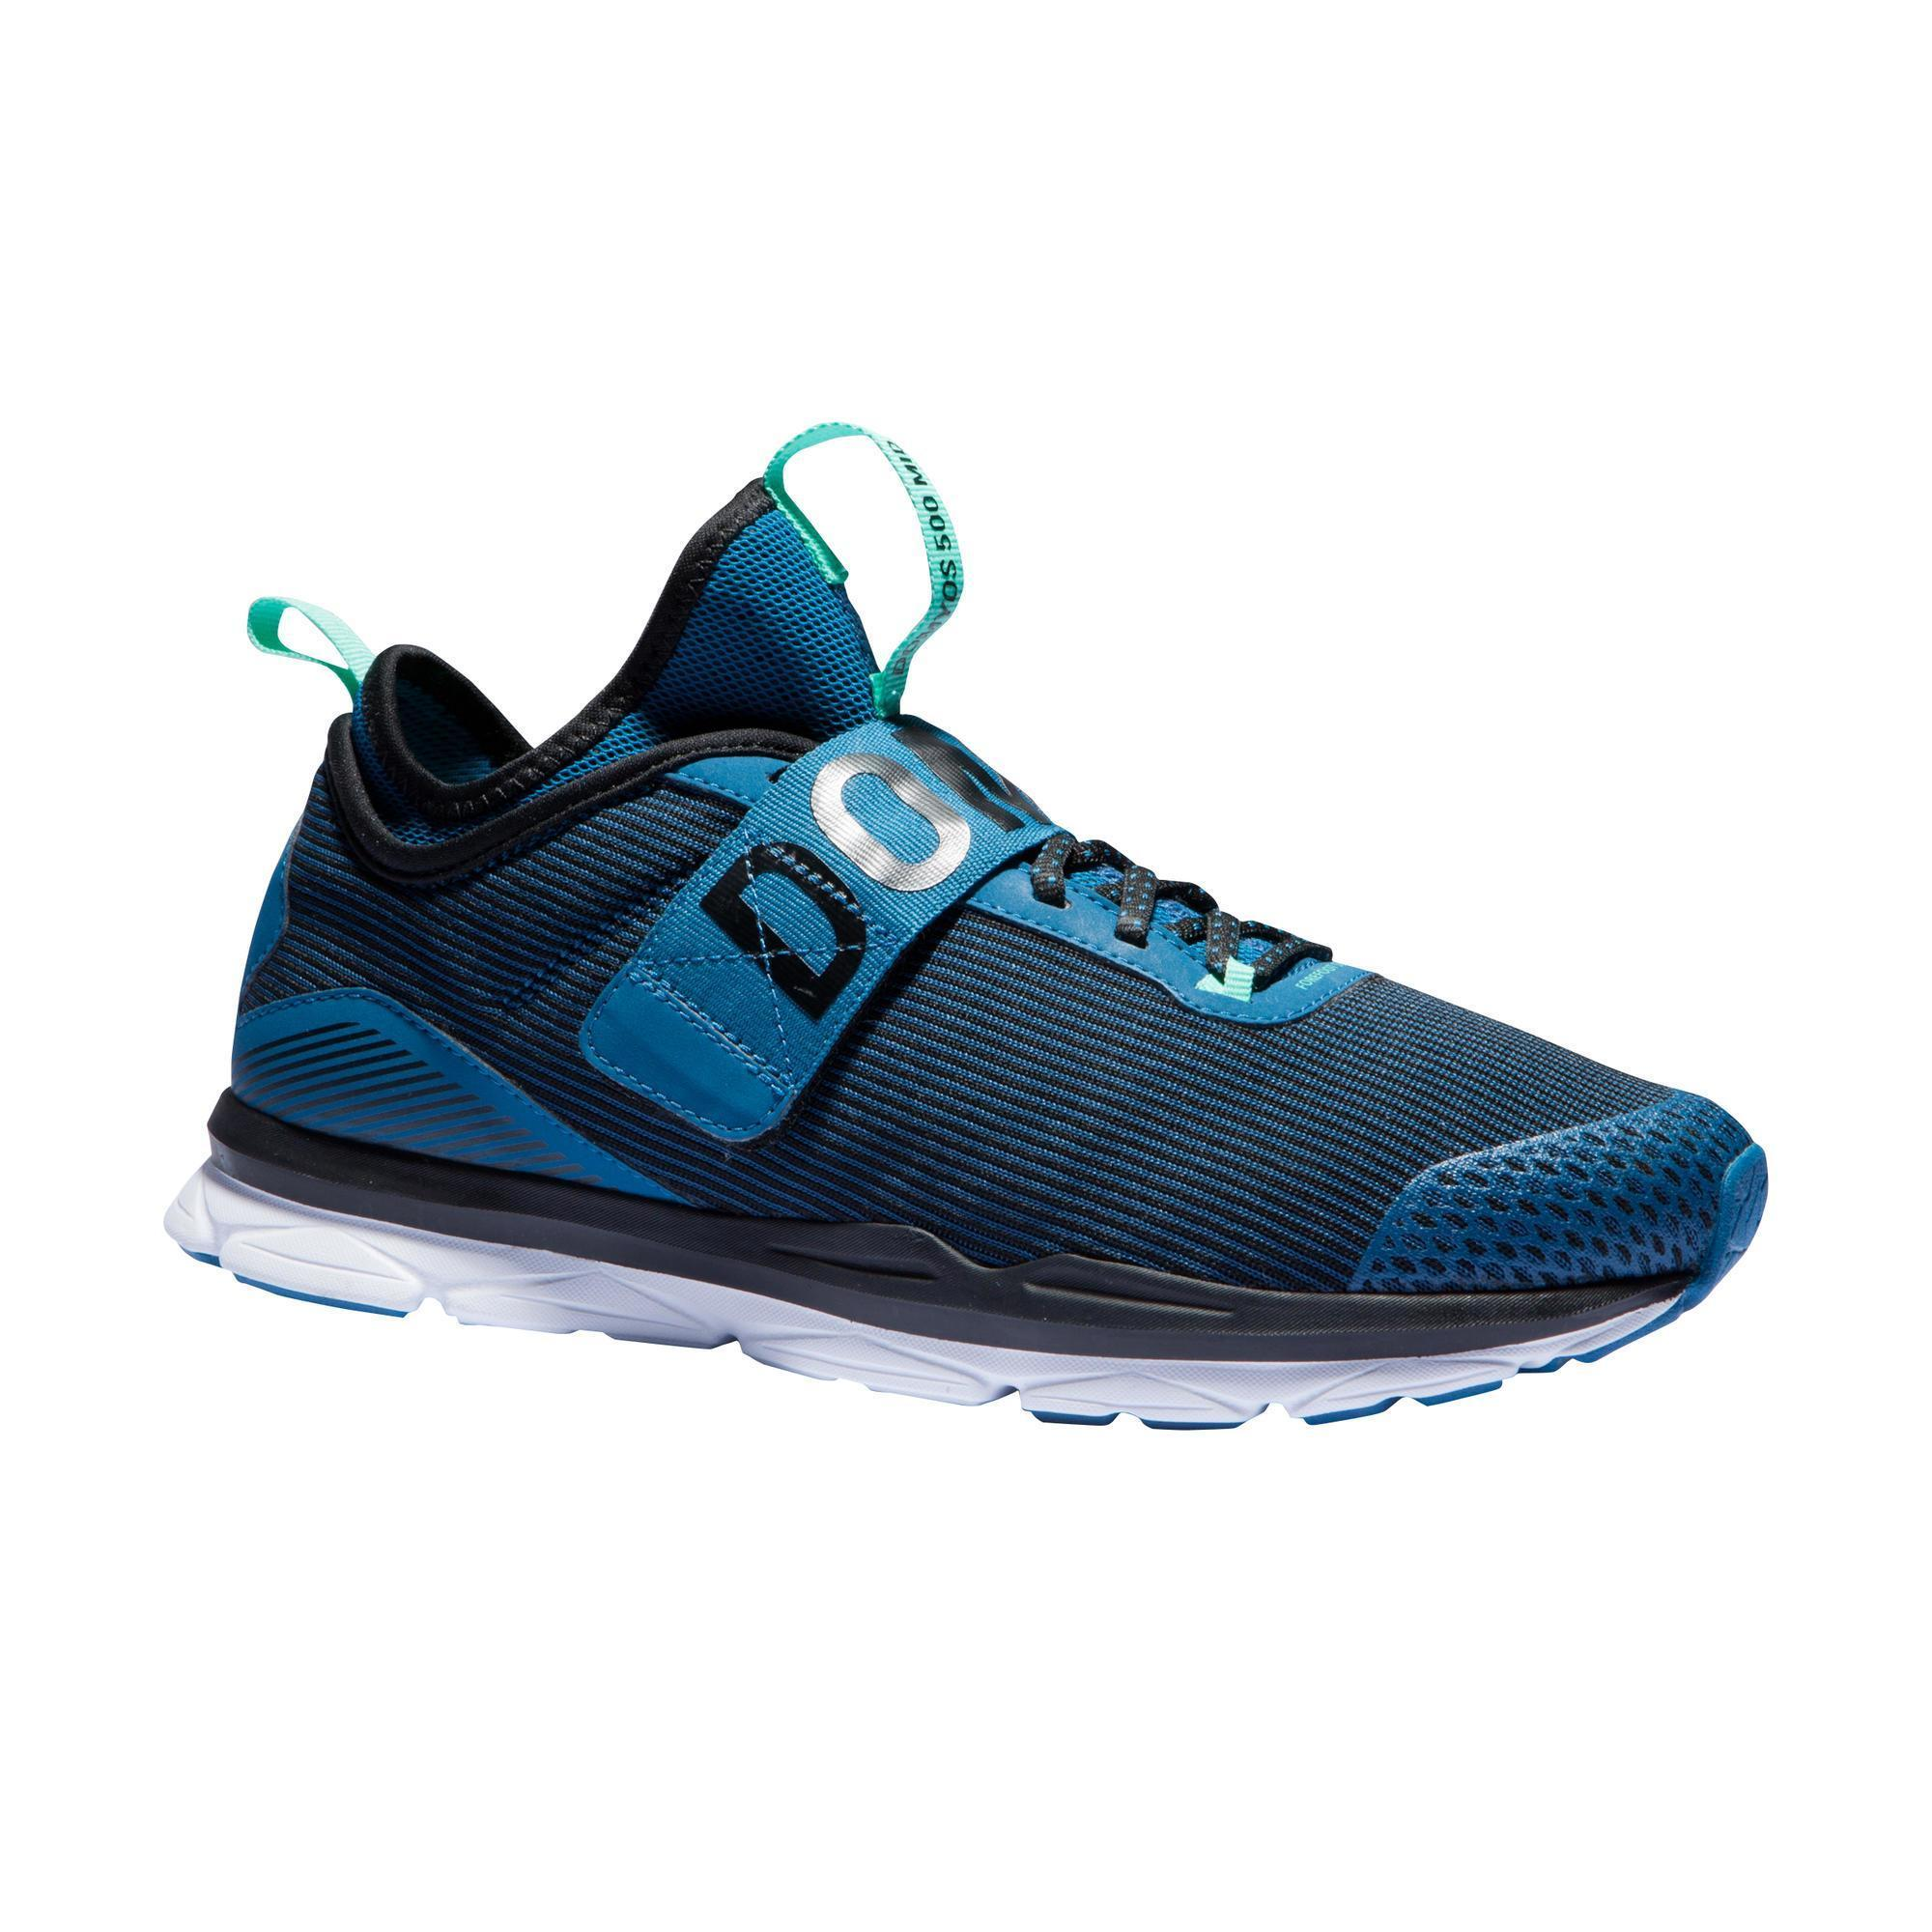 500 Mid Women S Cardio Fitness Shoes Blue Green Domyos